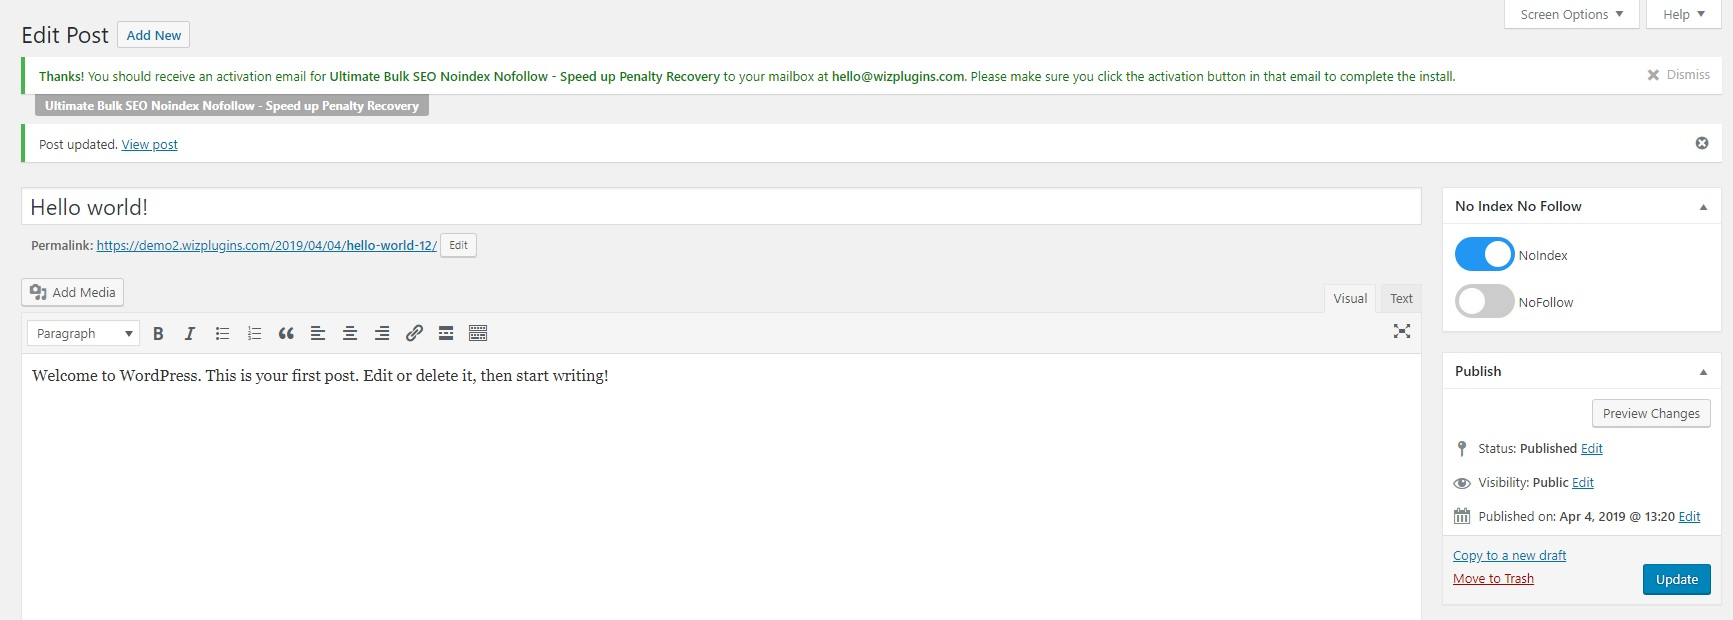 Individual post edit screen showing post now set to noindex, follow by individually updating post